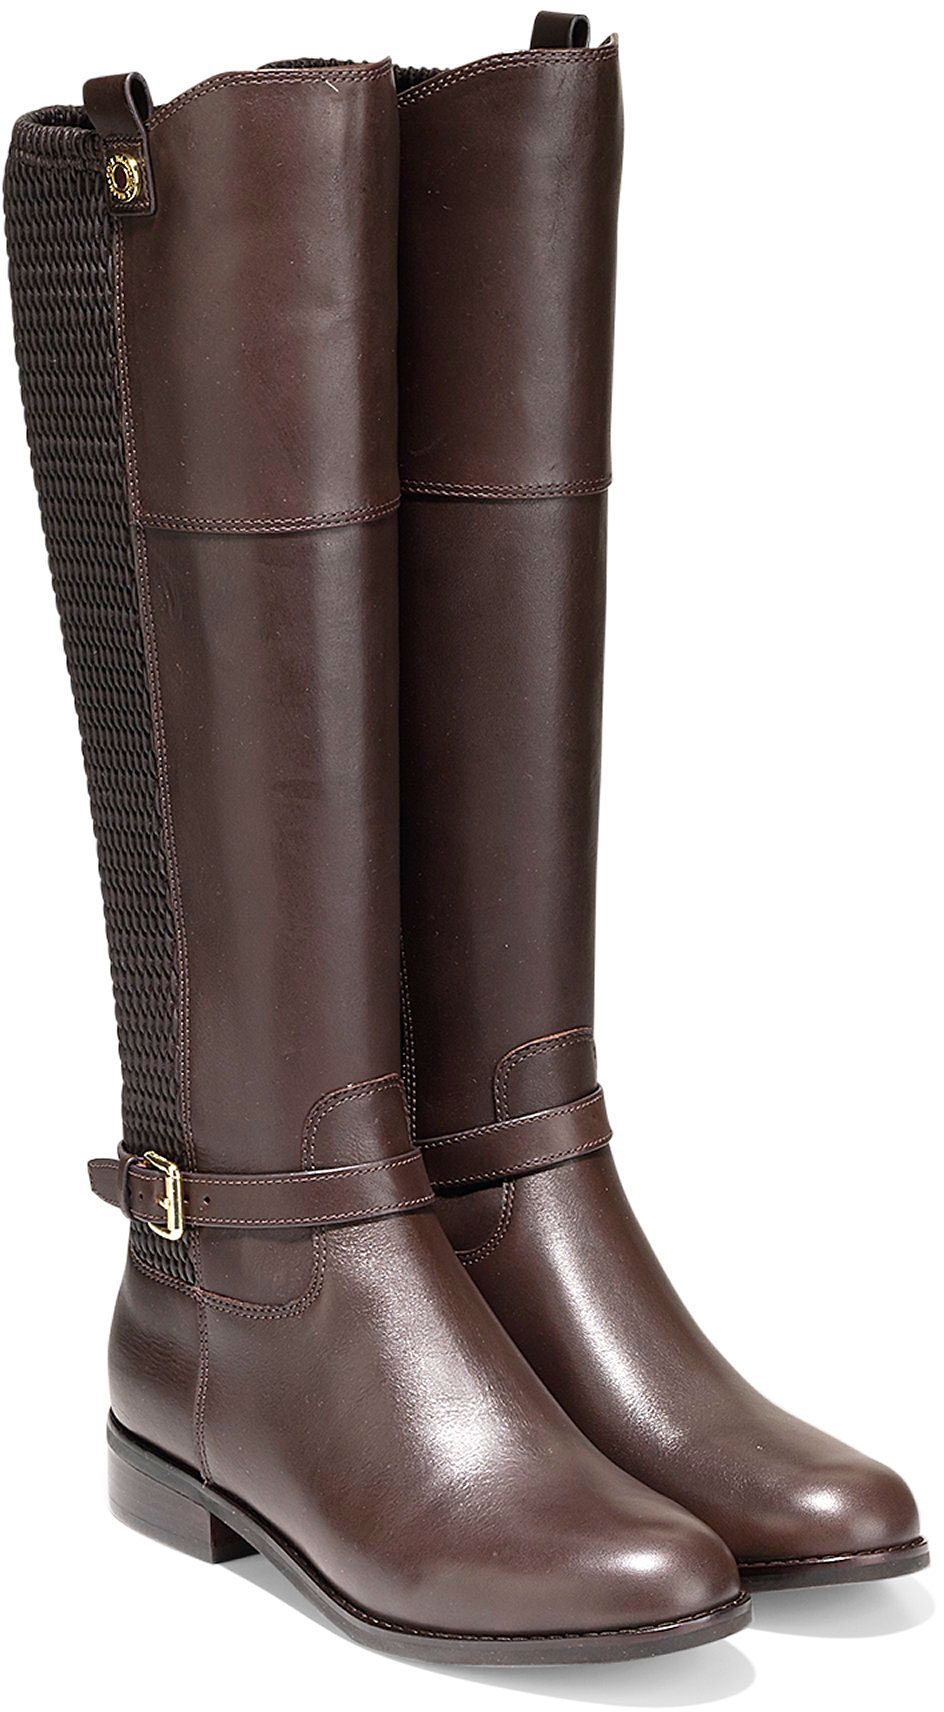 eabfe1e8a69 ... Knee High · Cole Haan Women s Galina Boot W07908 Java Leather-Weave  Stretch · https   www.theshoemart.com product images images COL . Tap to  expand